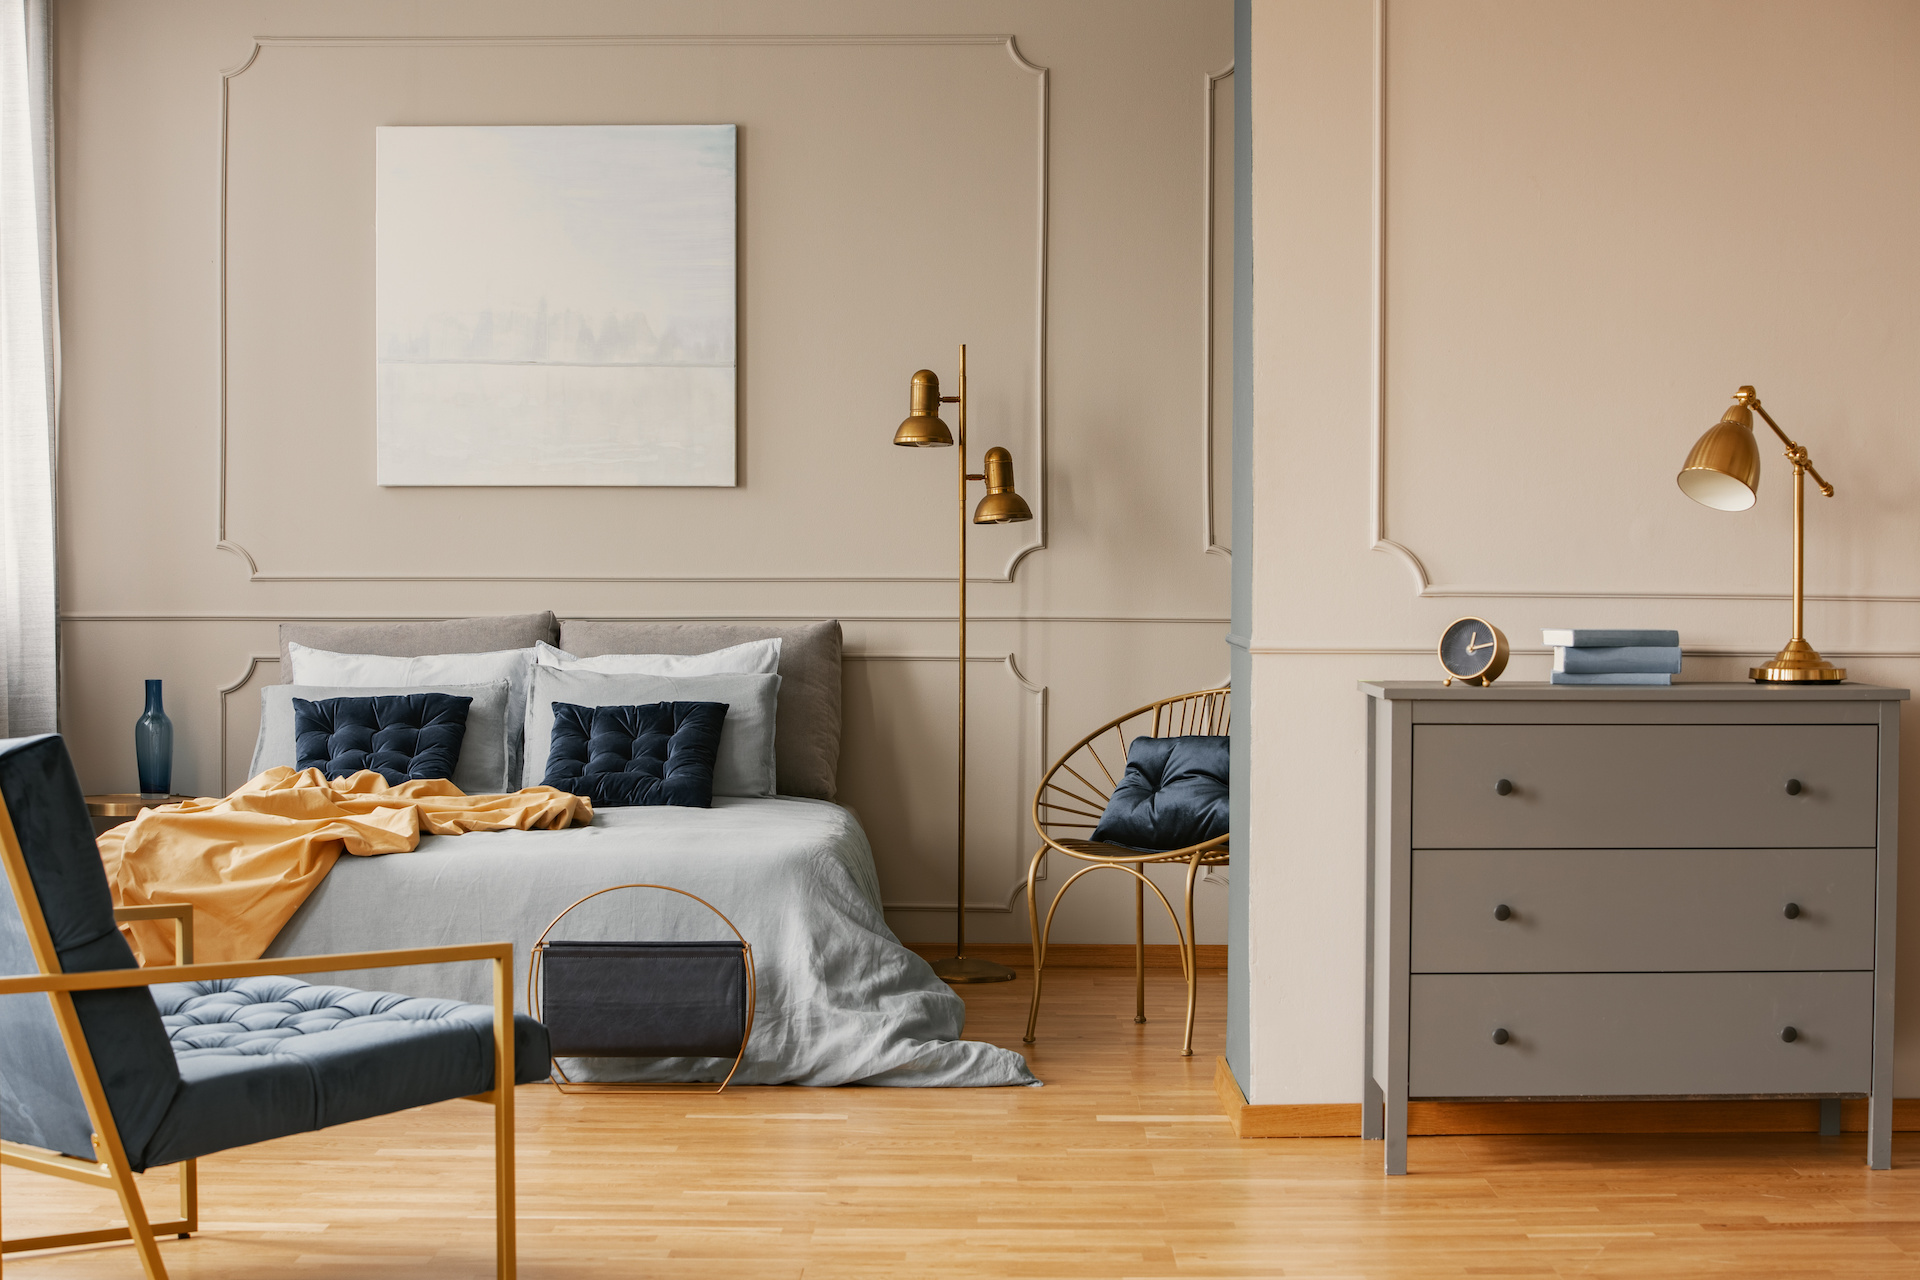 Elegant Bedroom Interior With King Size Bed, Painting On The Wall And Grey Commode